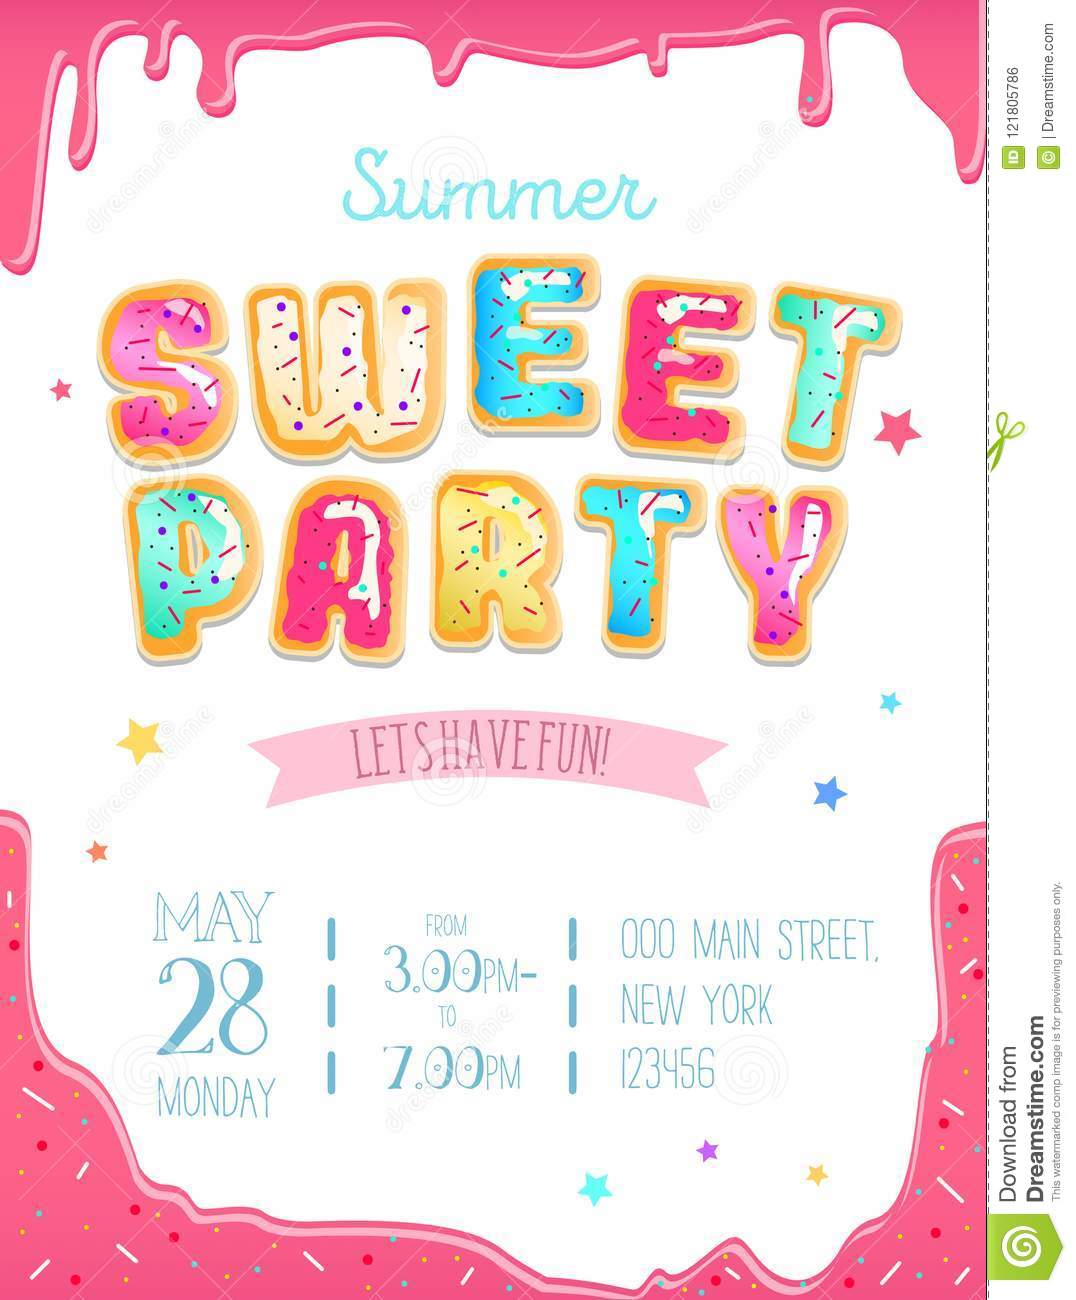 Party Cute Invitation Design. Sweet Donut Party Poster For Birth ...